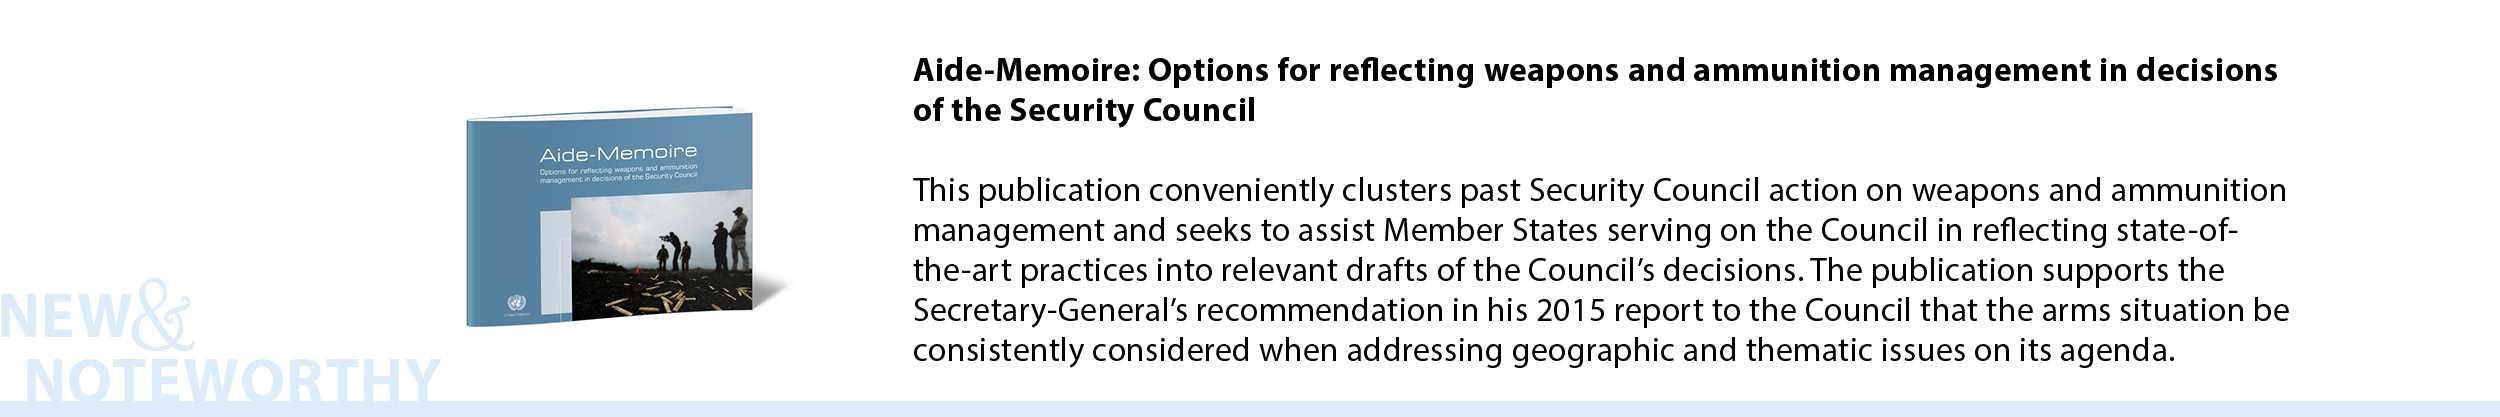 Aide-Memoire: Options for reflecting weapons and ammunition management in decisions of the Security Council - Conveniently clustering past Security Council action on weapons and ammunition management, this Aide-Memoire seeks to assist Member States serving on the Council in reflecting state-of-the-art practices into relevant drafts of the Council's decisions. The publication supports the Secretary-General's recommendation in his 2015 report to the Council that the arms situation be consistently considered when addressing geographic and thematic issues on its agenda.